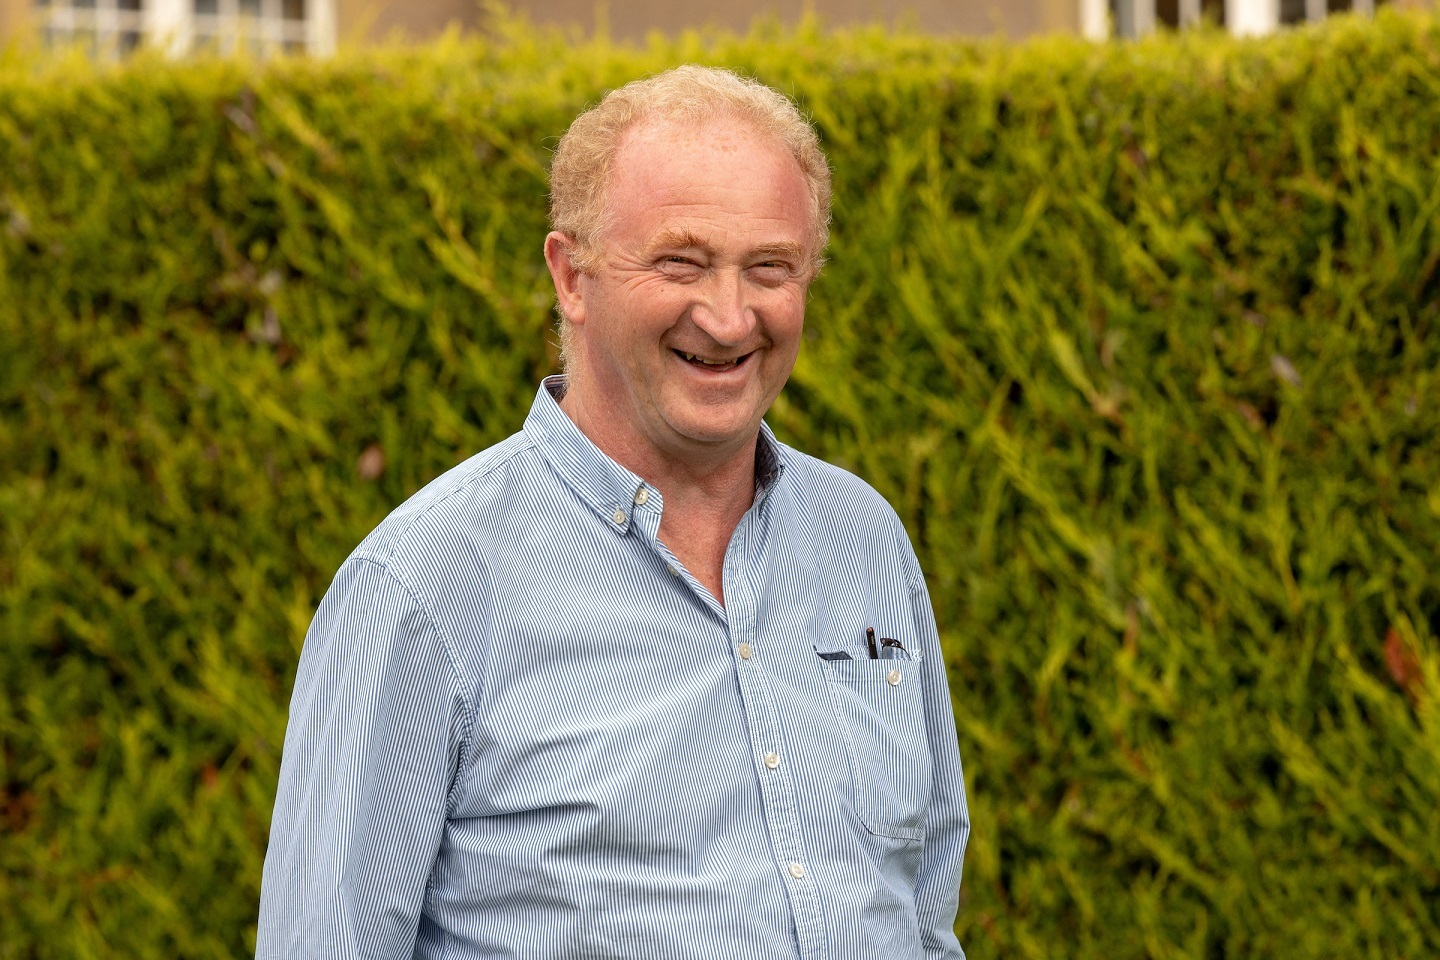 Colin Thomson, 61, from Fortrose survived Prostate cancer as a result of early diagnosis.